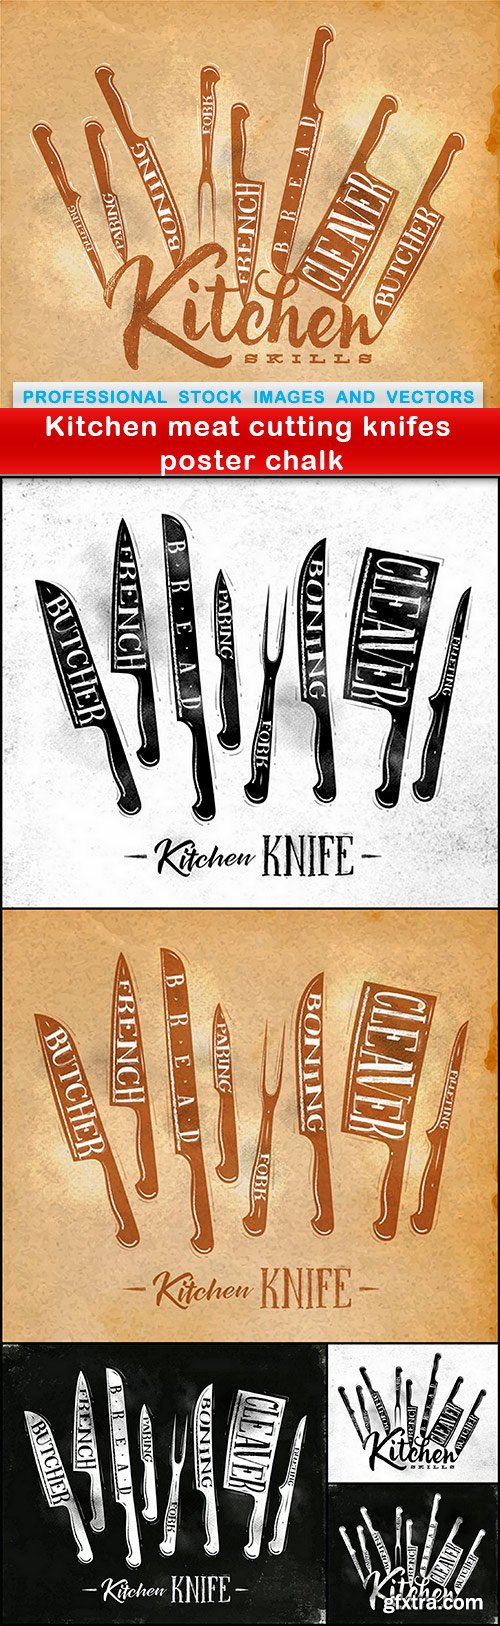 Kitchen meat cutting knifes poster chalk - 6 EPS